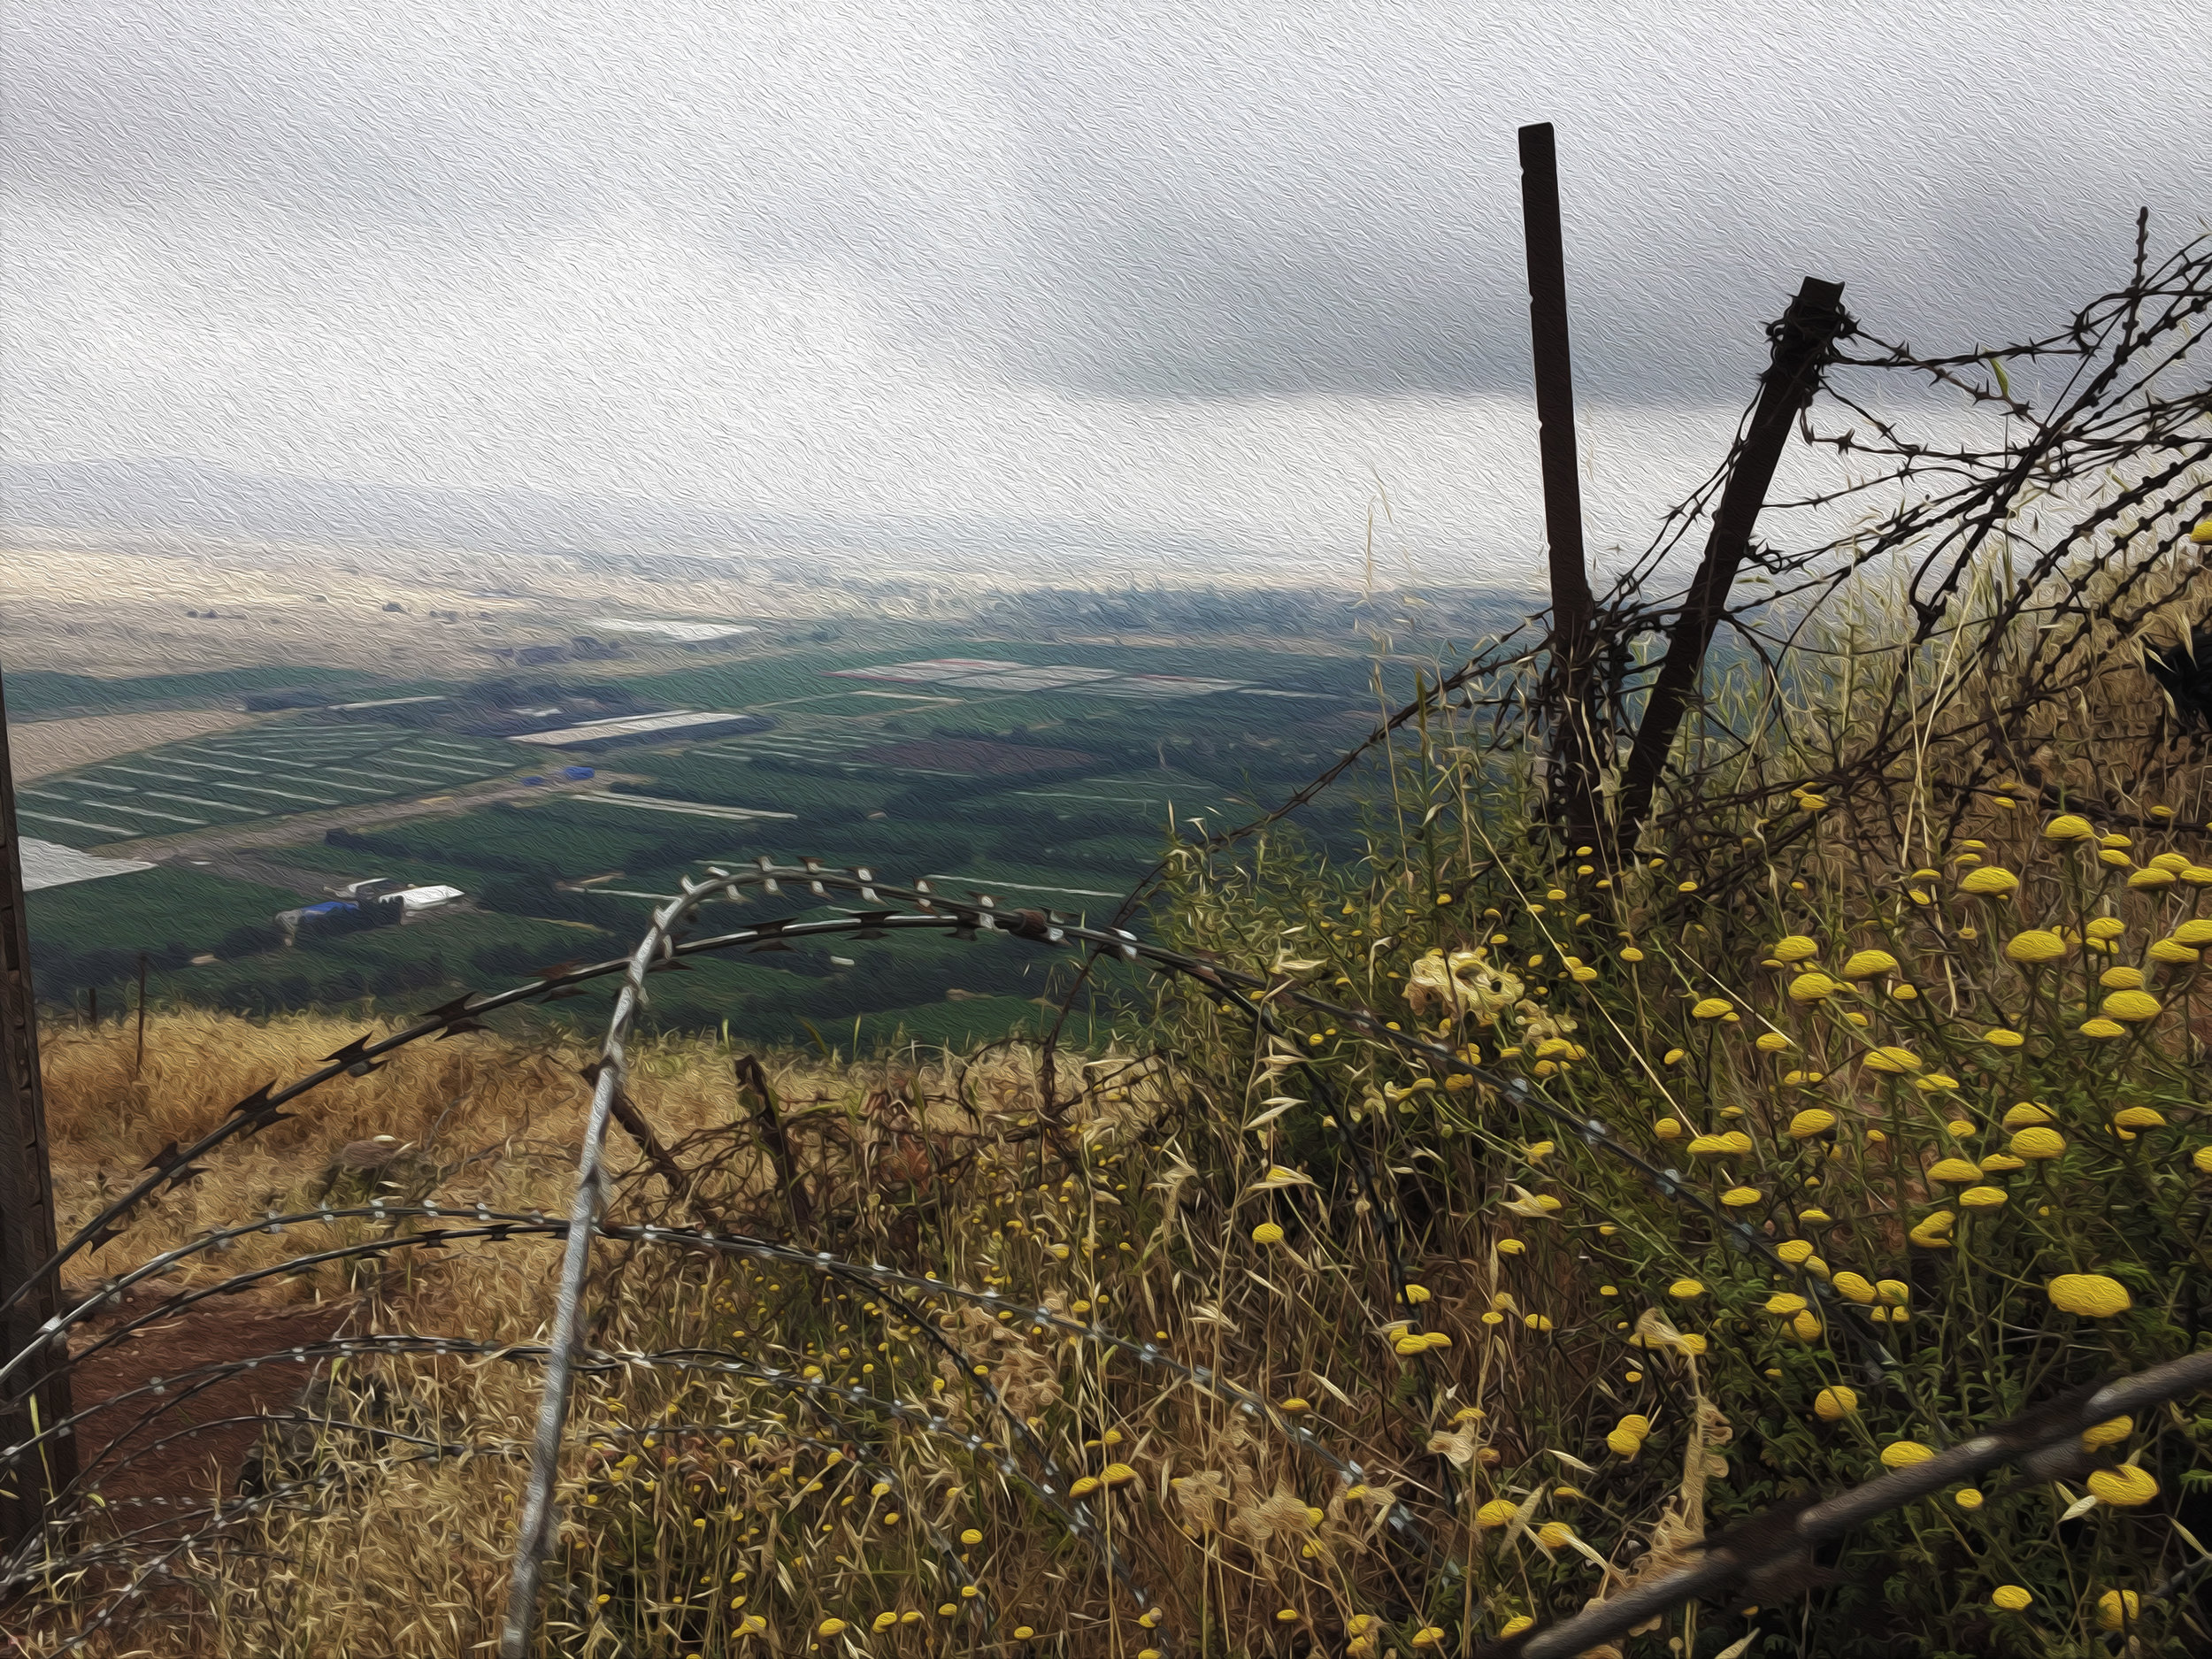 Matthew Williams/The Conflict Archives: The Occupied Golan Heights overlooking the Quneitra ( Muḥāfaẓat Al-Qunayṭrah)  province.